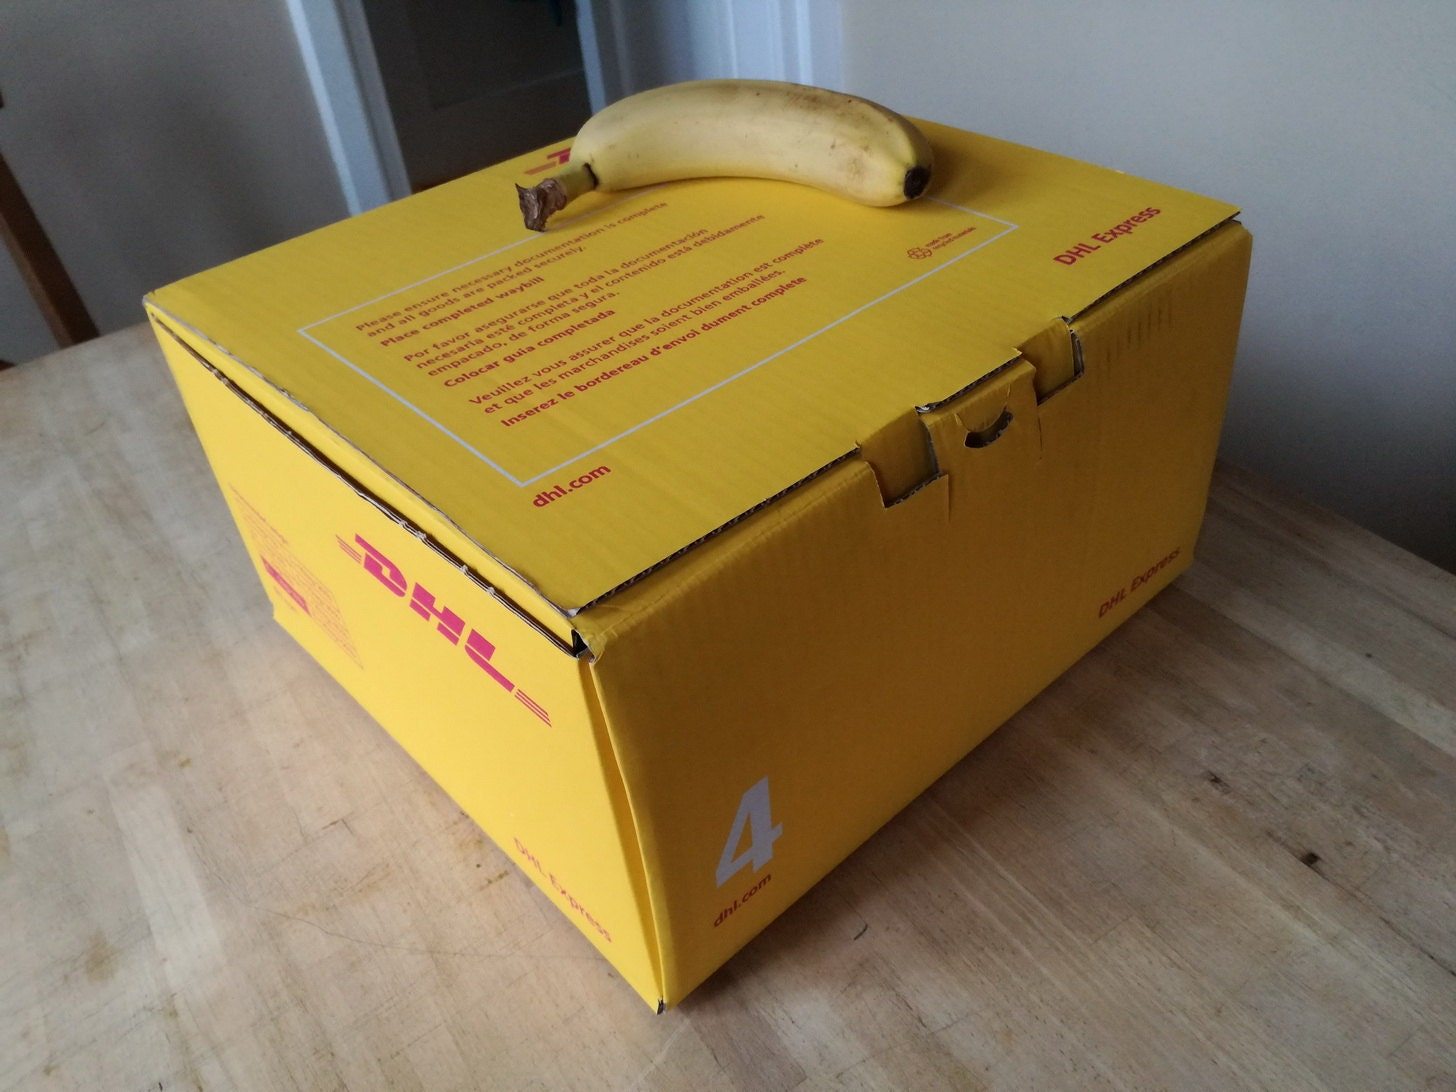 >2kg DHL box (box #4) which contains an XXL Sloth